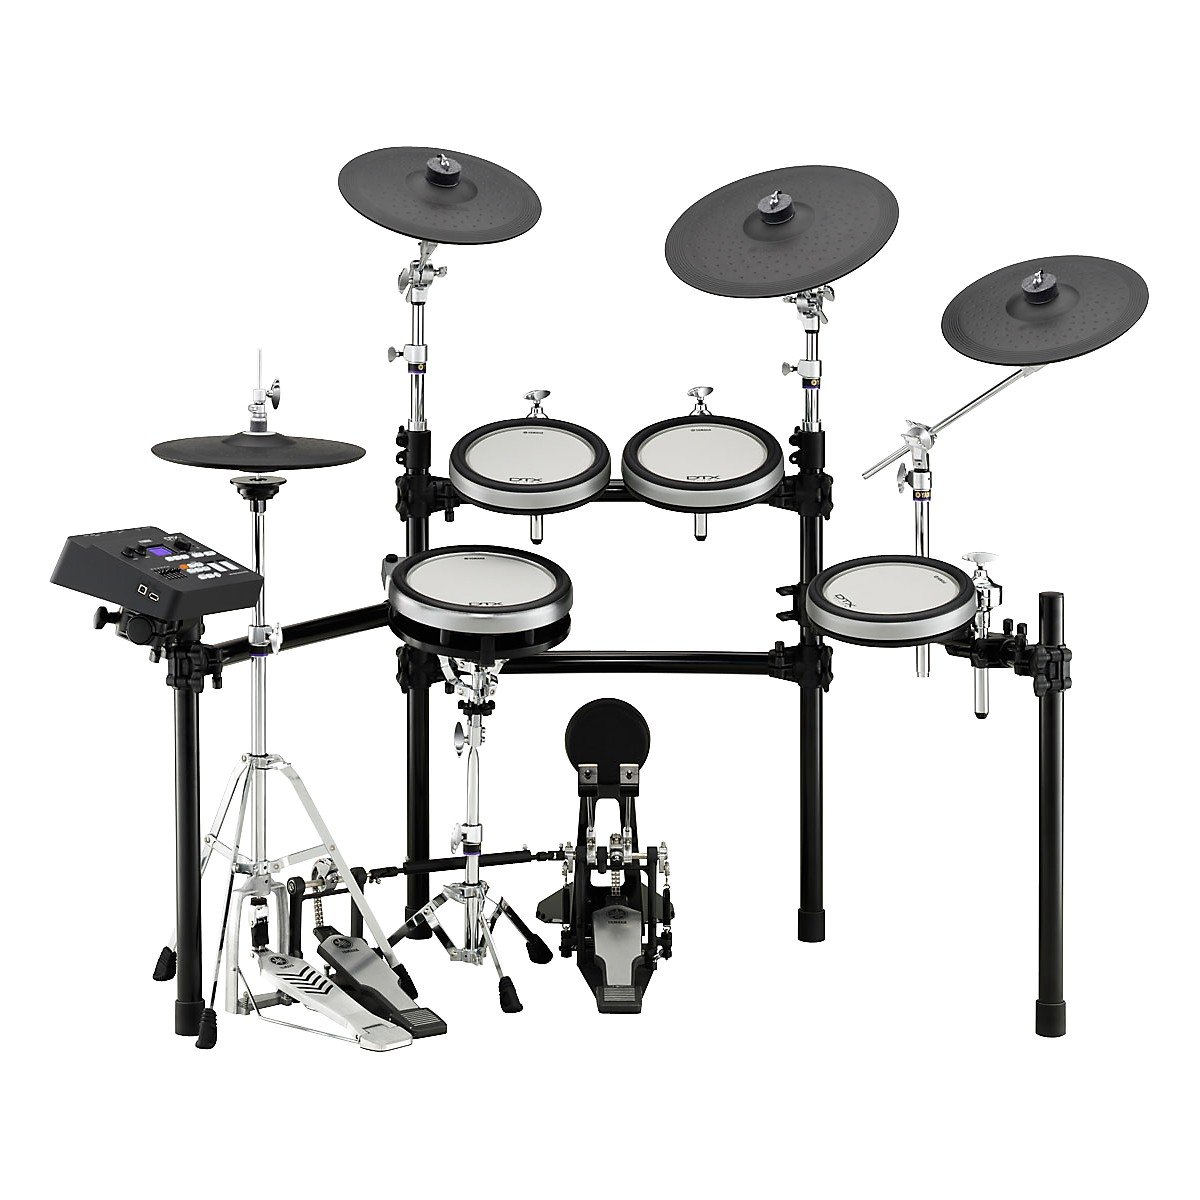 This 5 Pieces Electronic Drum Set Is Made By Yamaha Another Well Established Brand